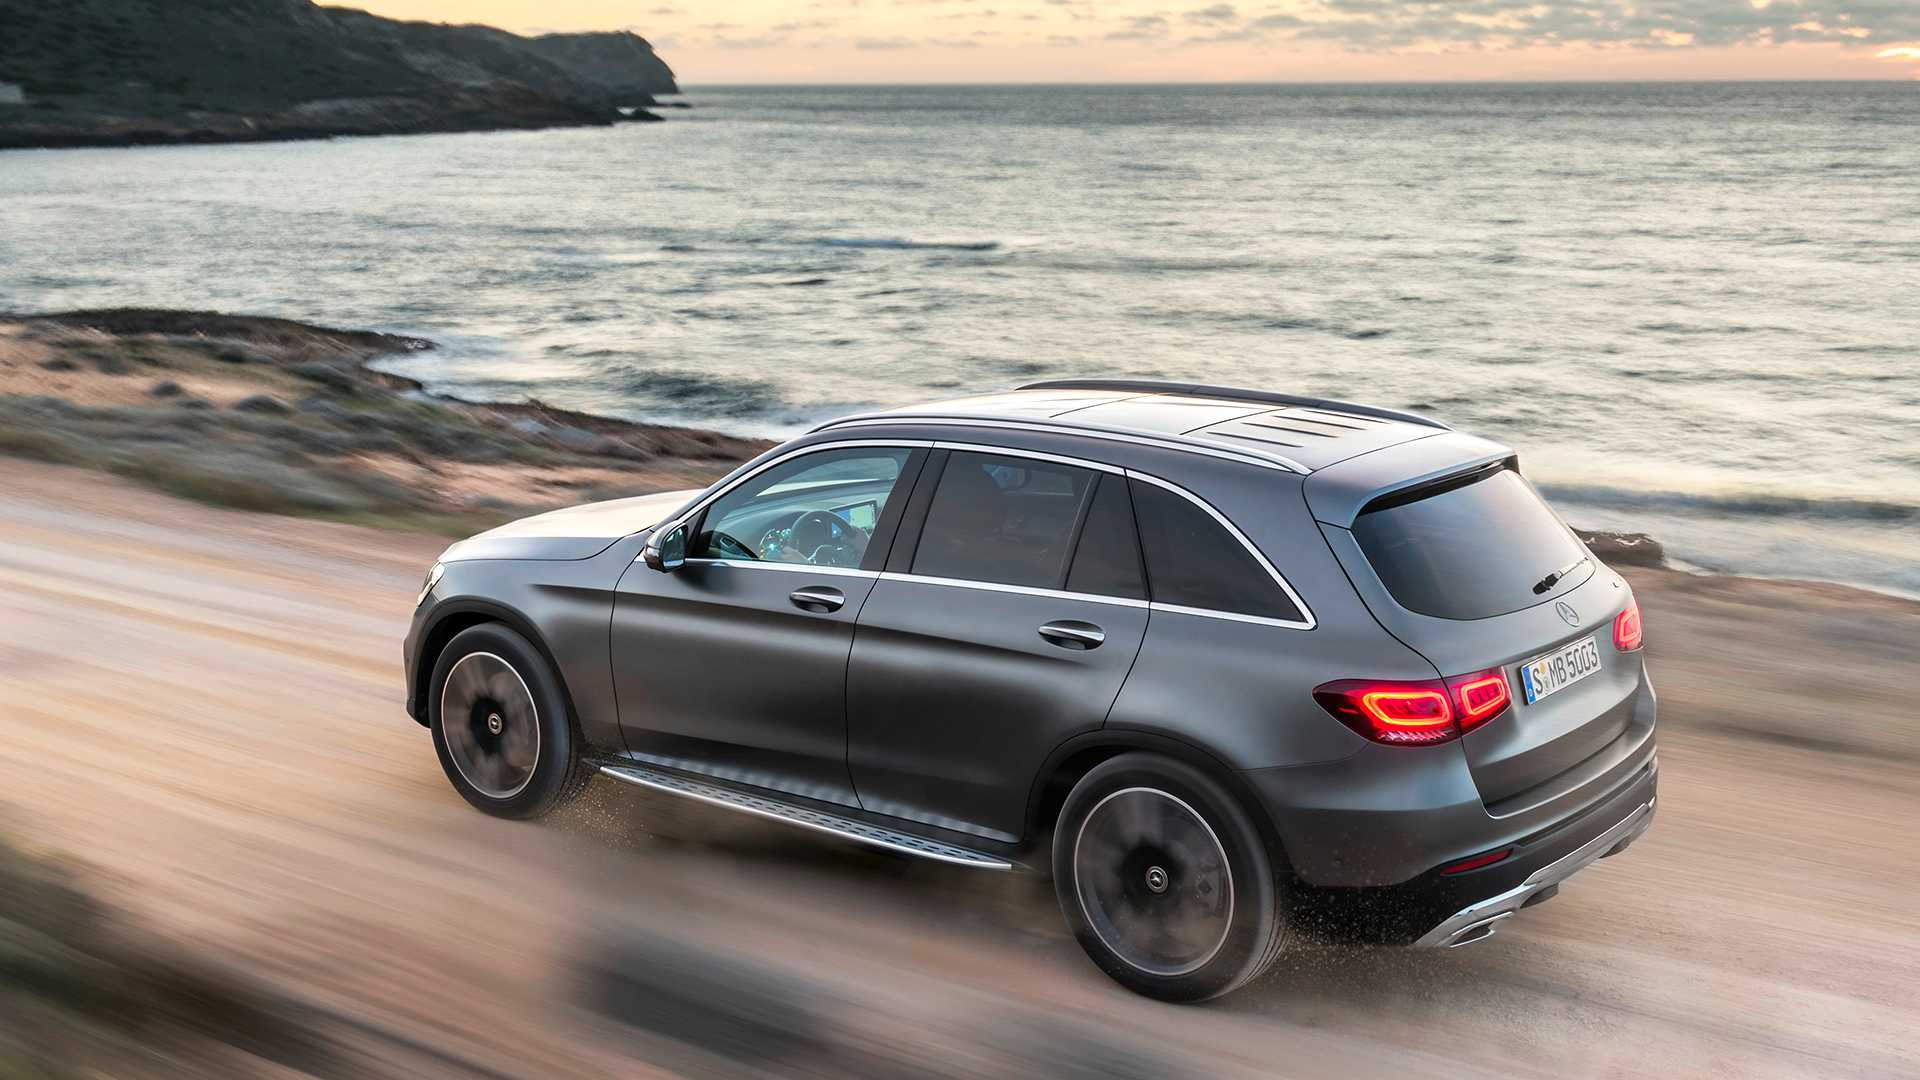 mercedes-benz-glc-2019 (10).jpg